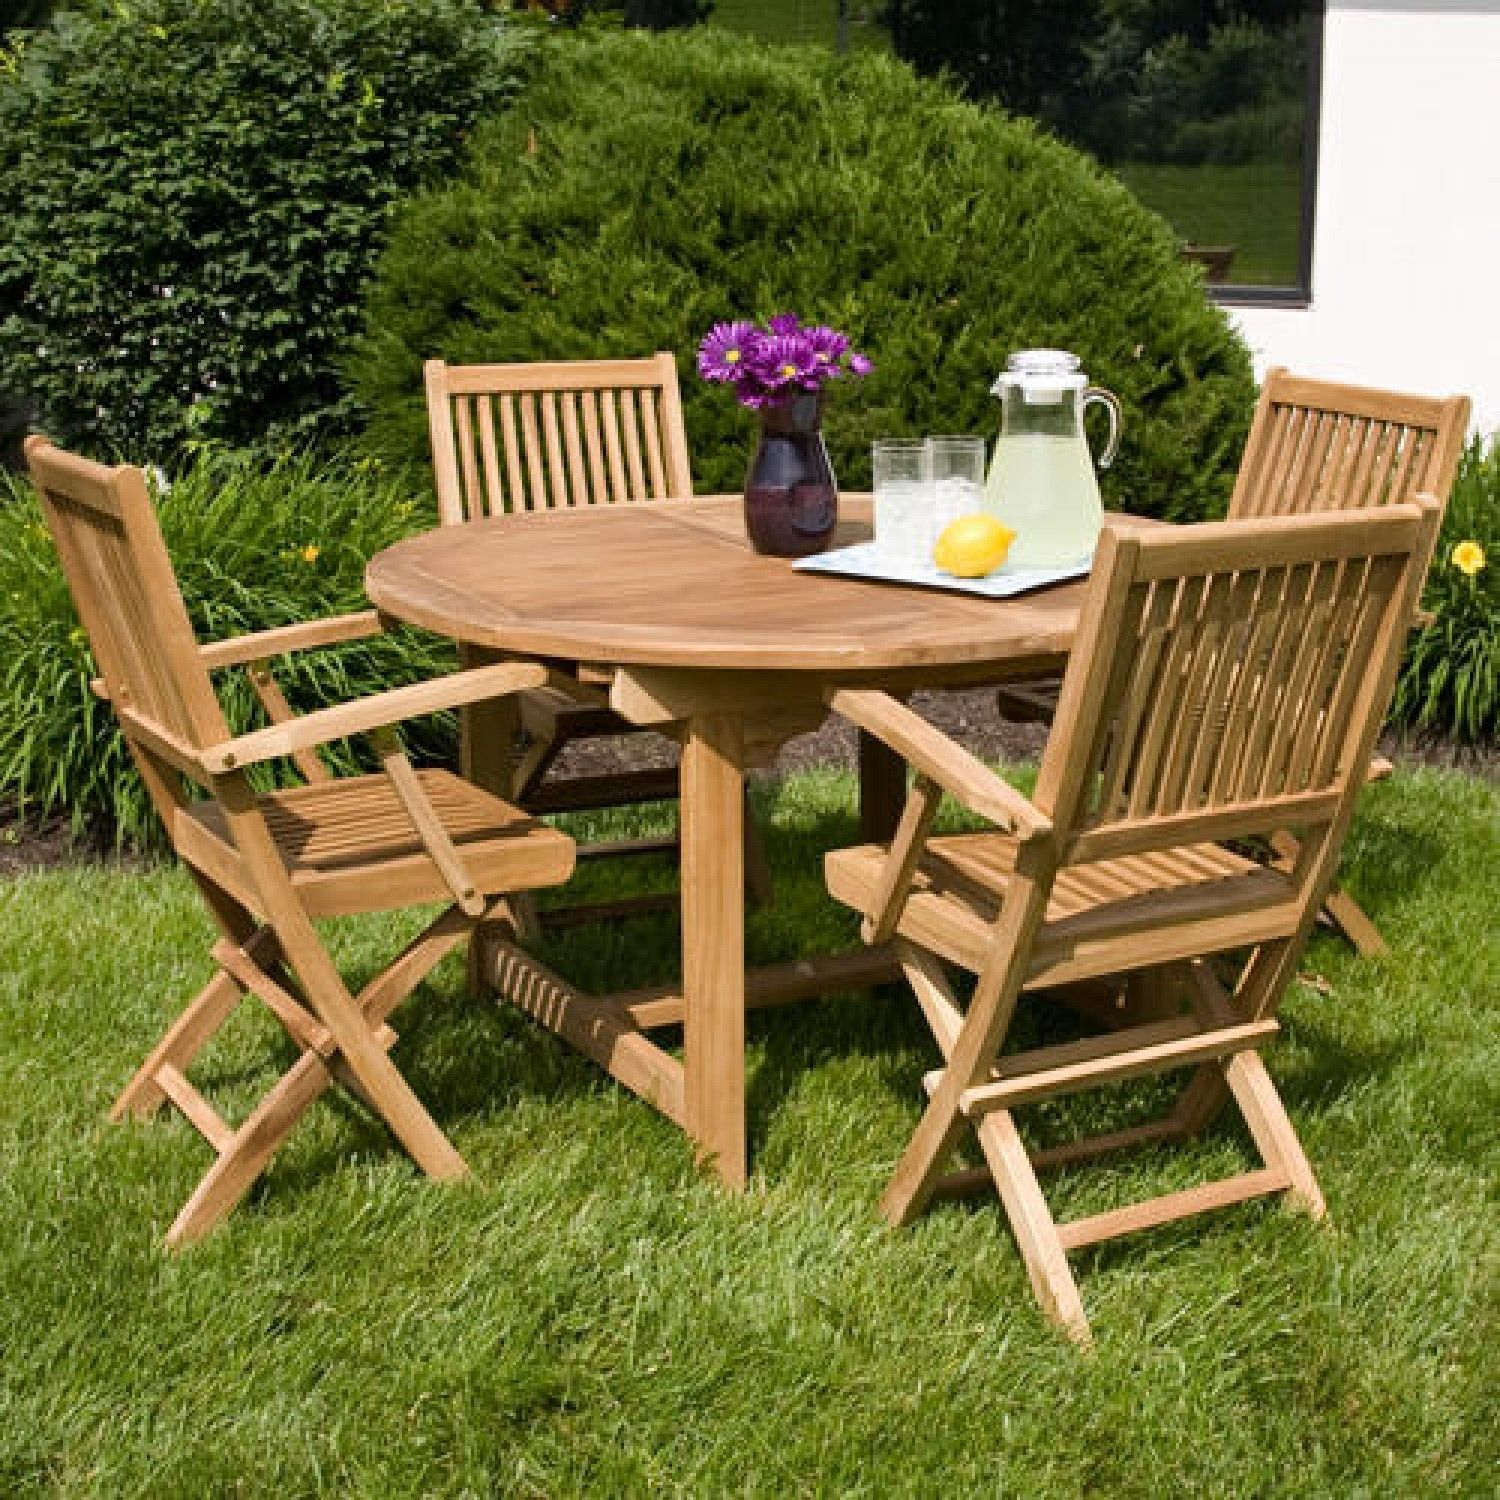 Outdoor Wood Folding Table And Chairs Set